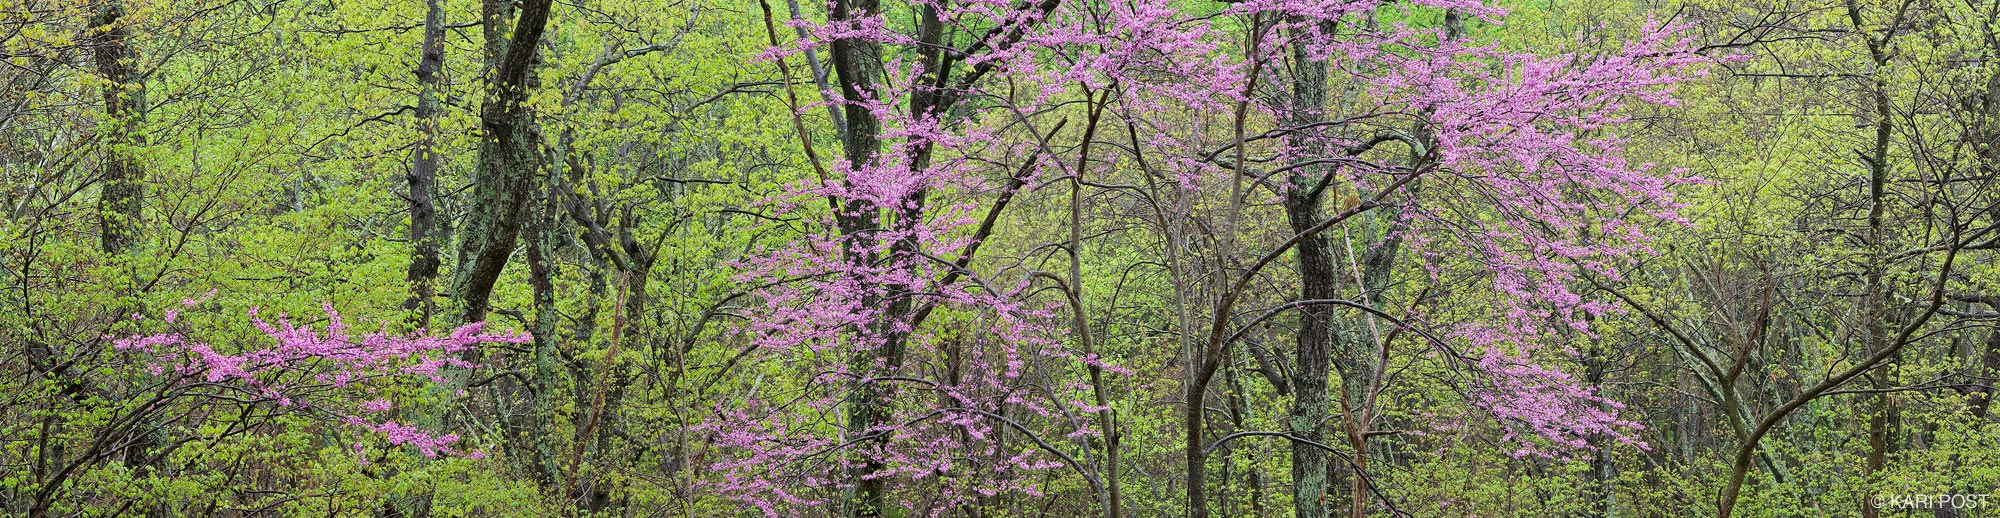 eastern redbud, Shenandoah National Park, Shenandoah, Virginia, panorama, photo